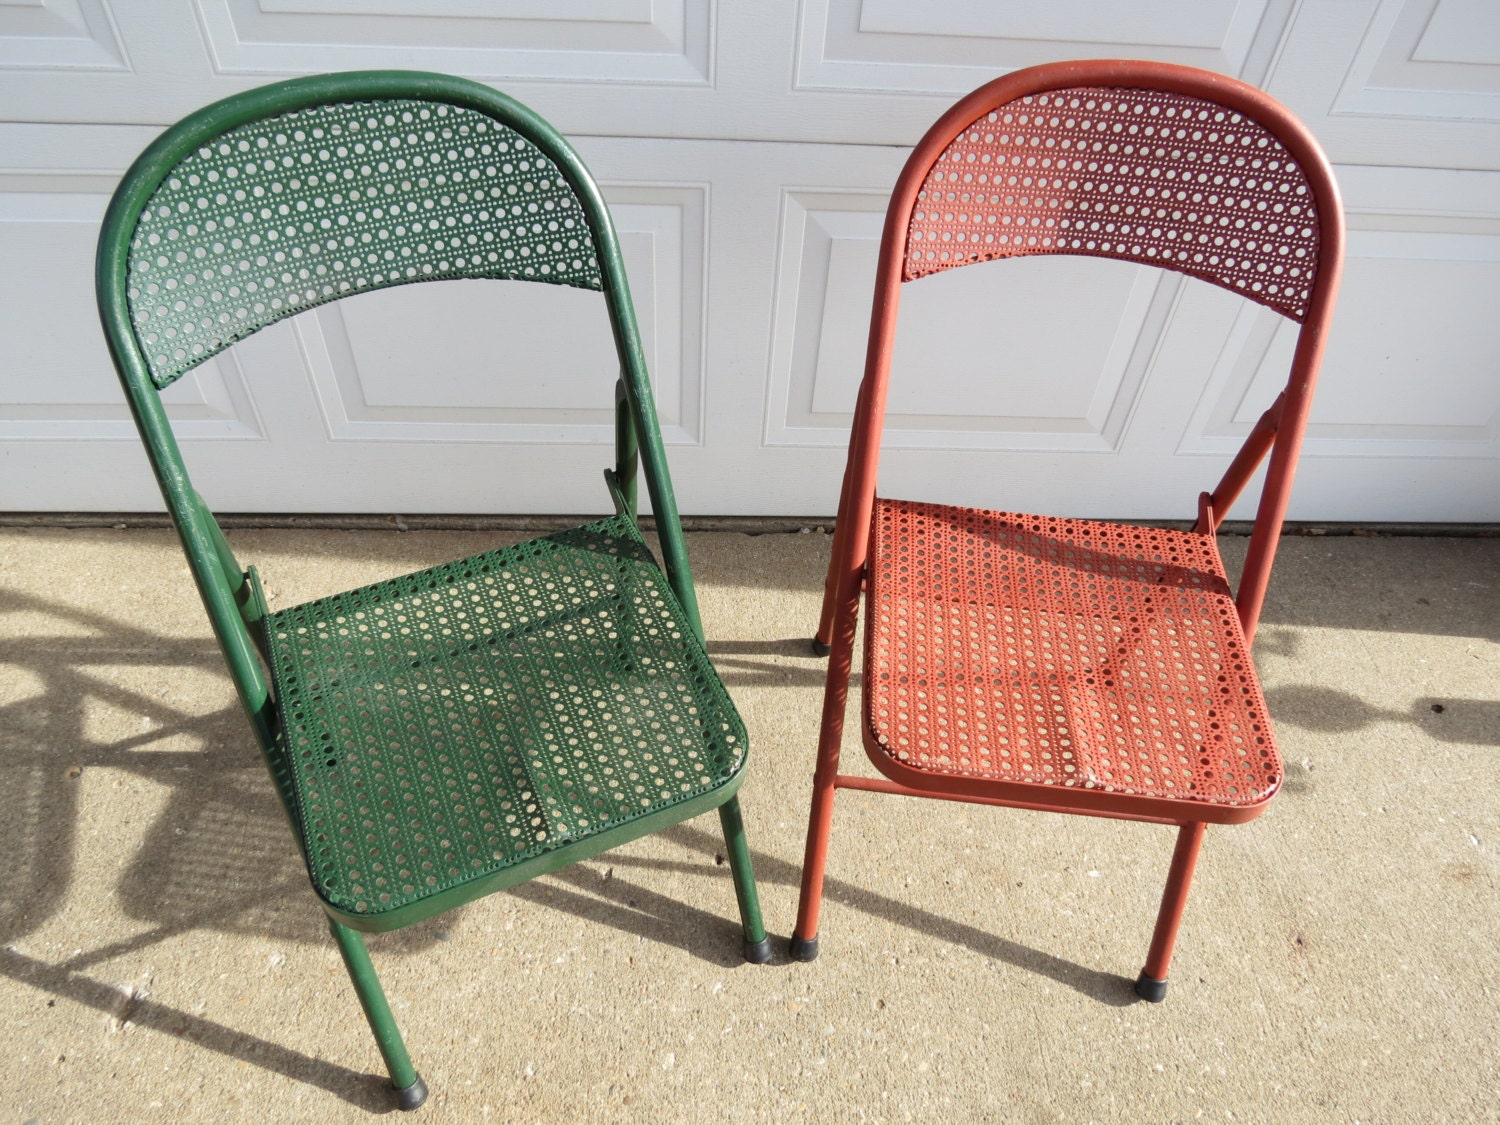 Vintage Metal Folding Chairs By Thevrose On Etsy